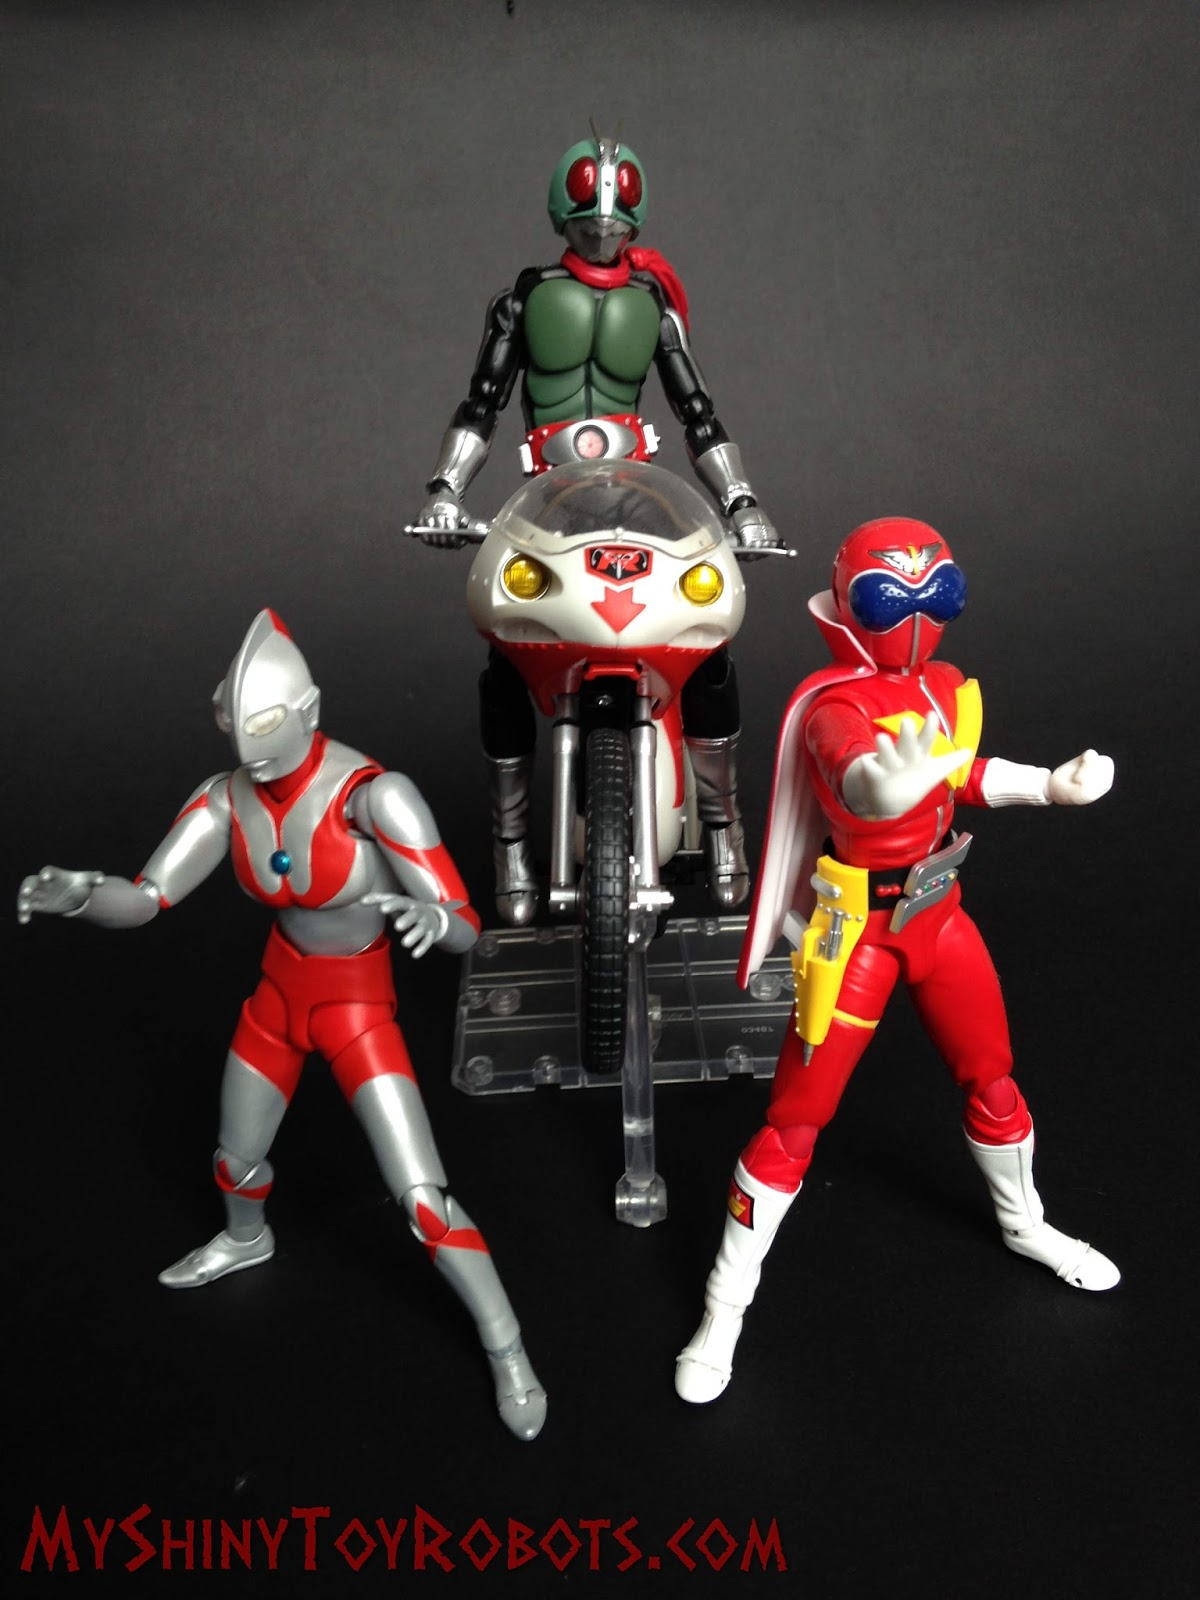 My Shiny Toy Robots: Toybox REVIEW: S.H. Figuarts Ultraman